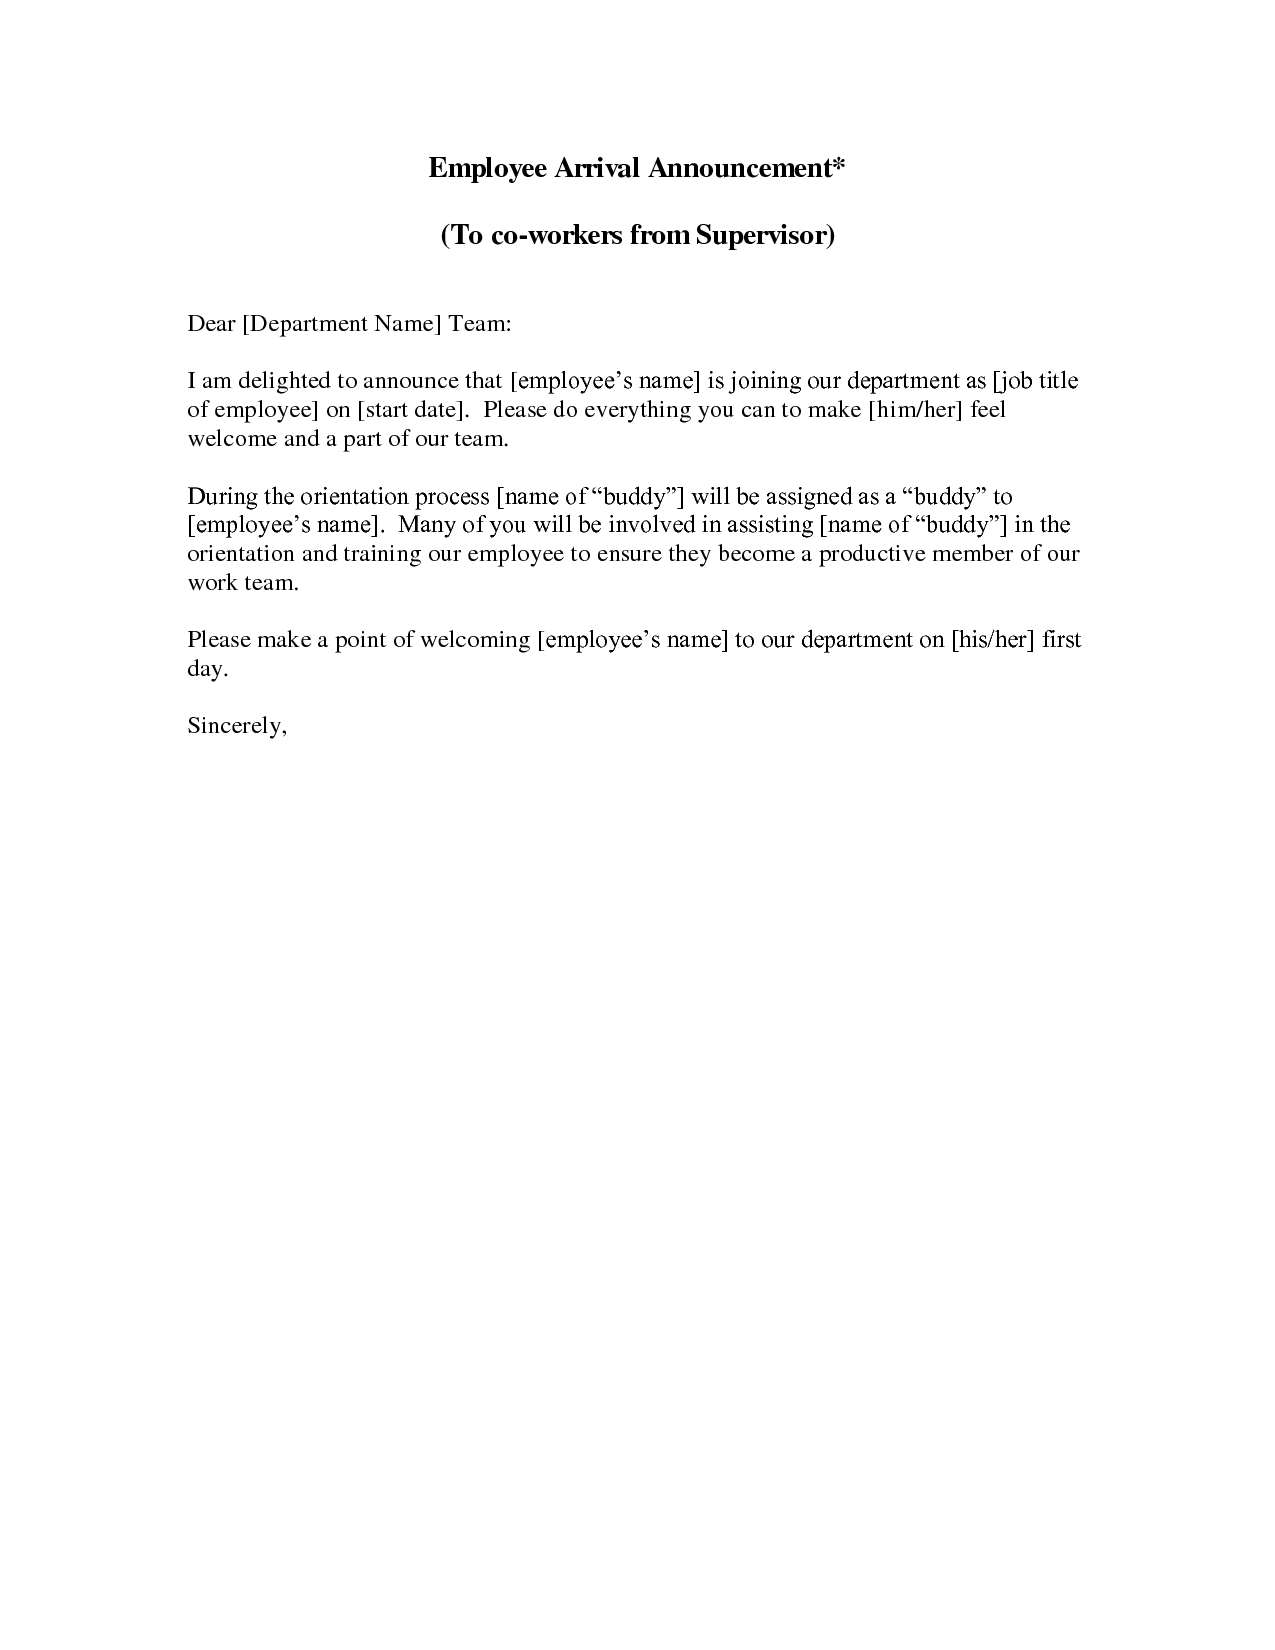 new employee announcement letter this sample new employee new employee announcement letter this sample new employee introduction letter welcomes your new staff member